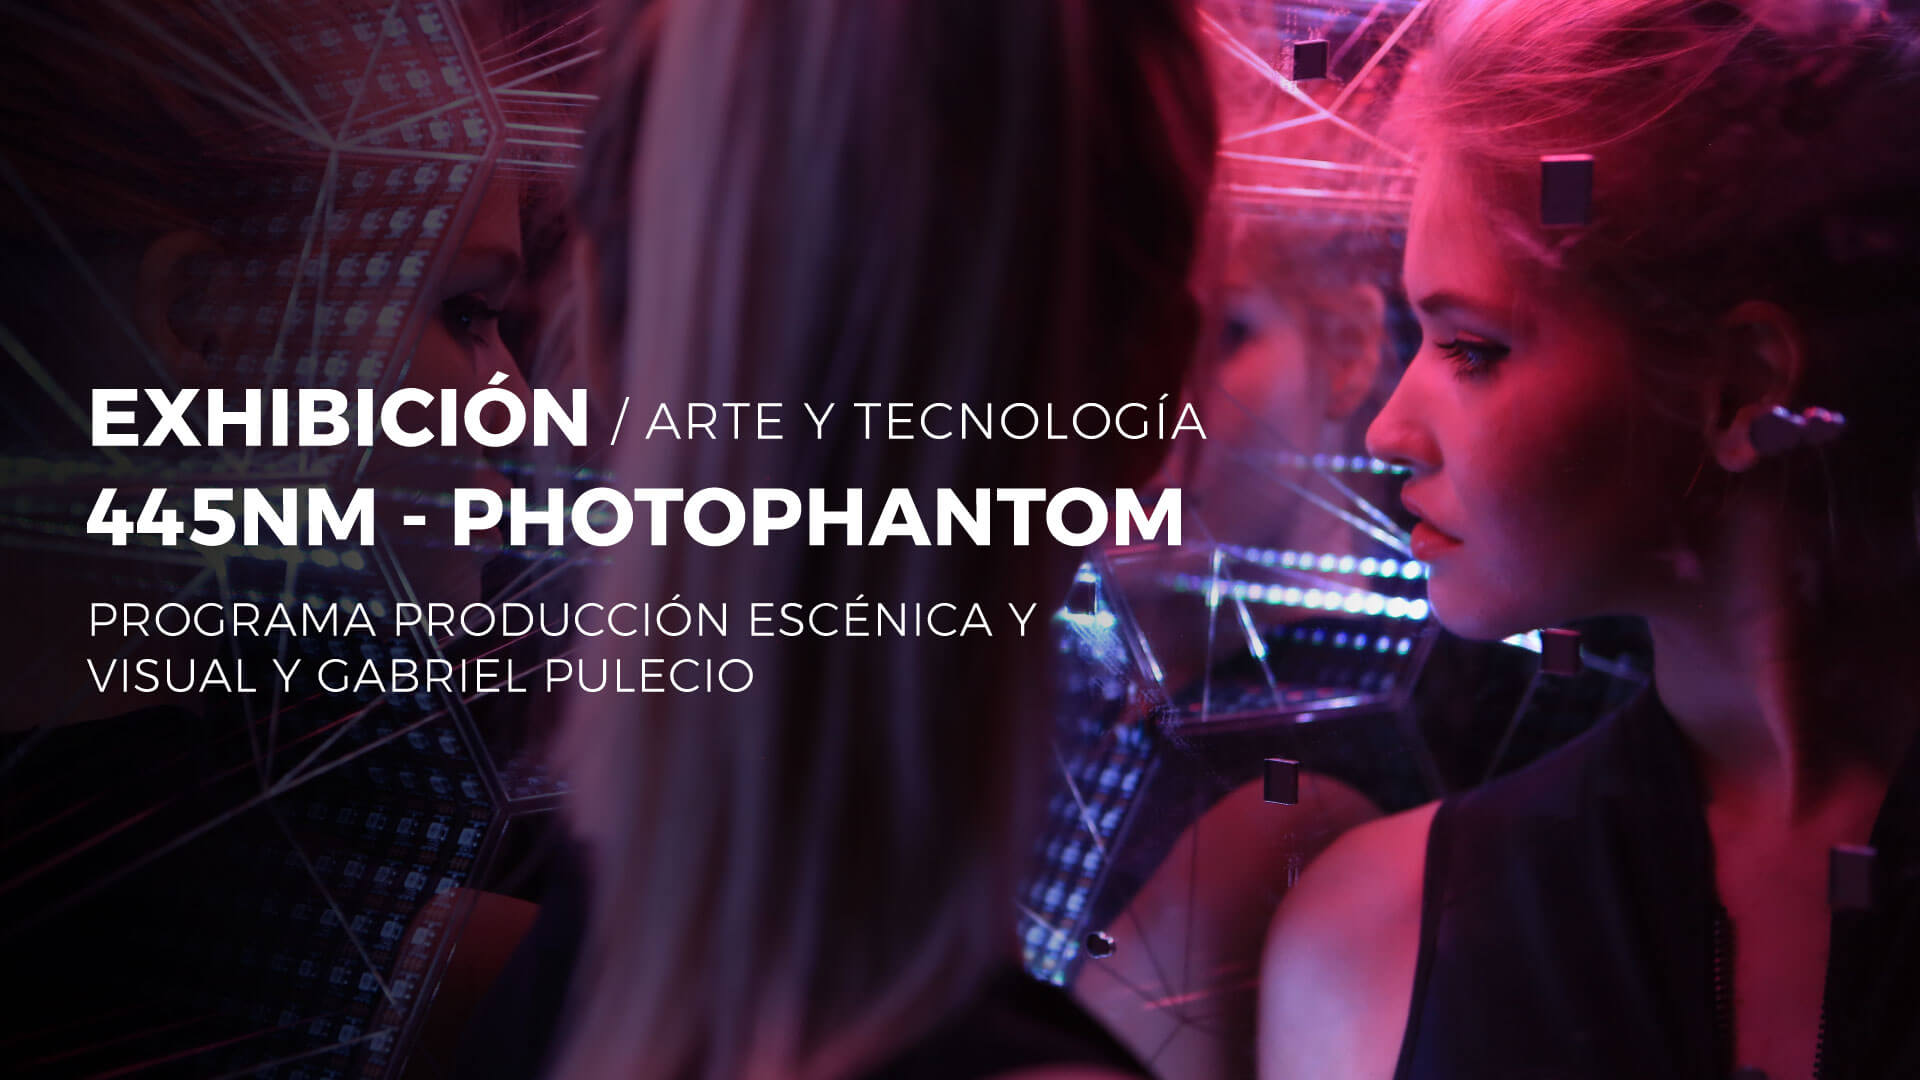 exhibicion-produccion-escenica-visual-445nm-photophantom